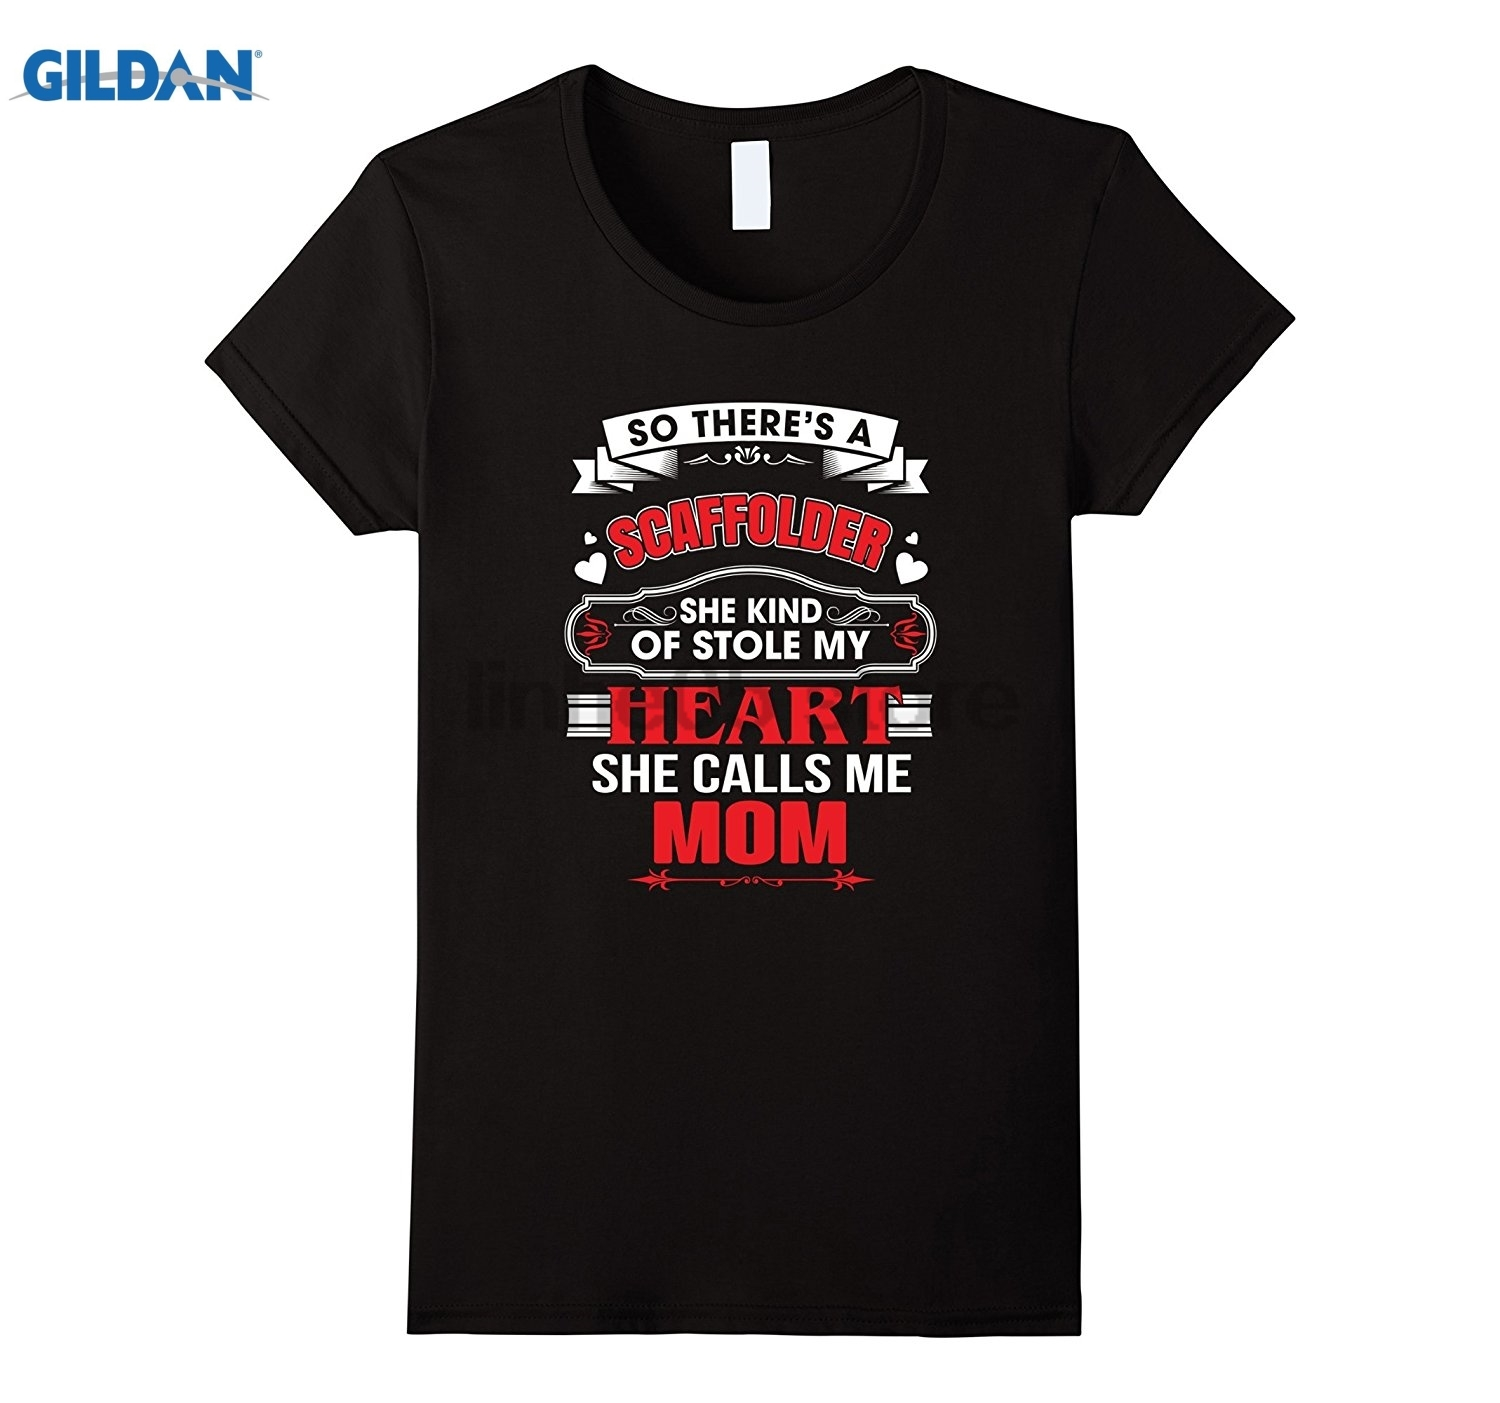 GILDAN Womens Scaffolder She kind of stole my heart She calls me Mom Tee Hot Womens T-shirt